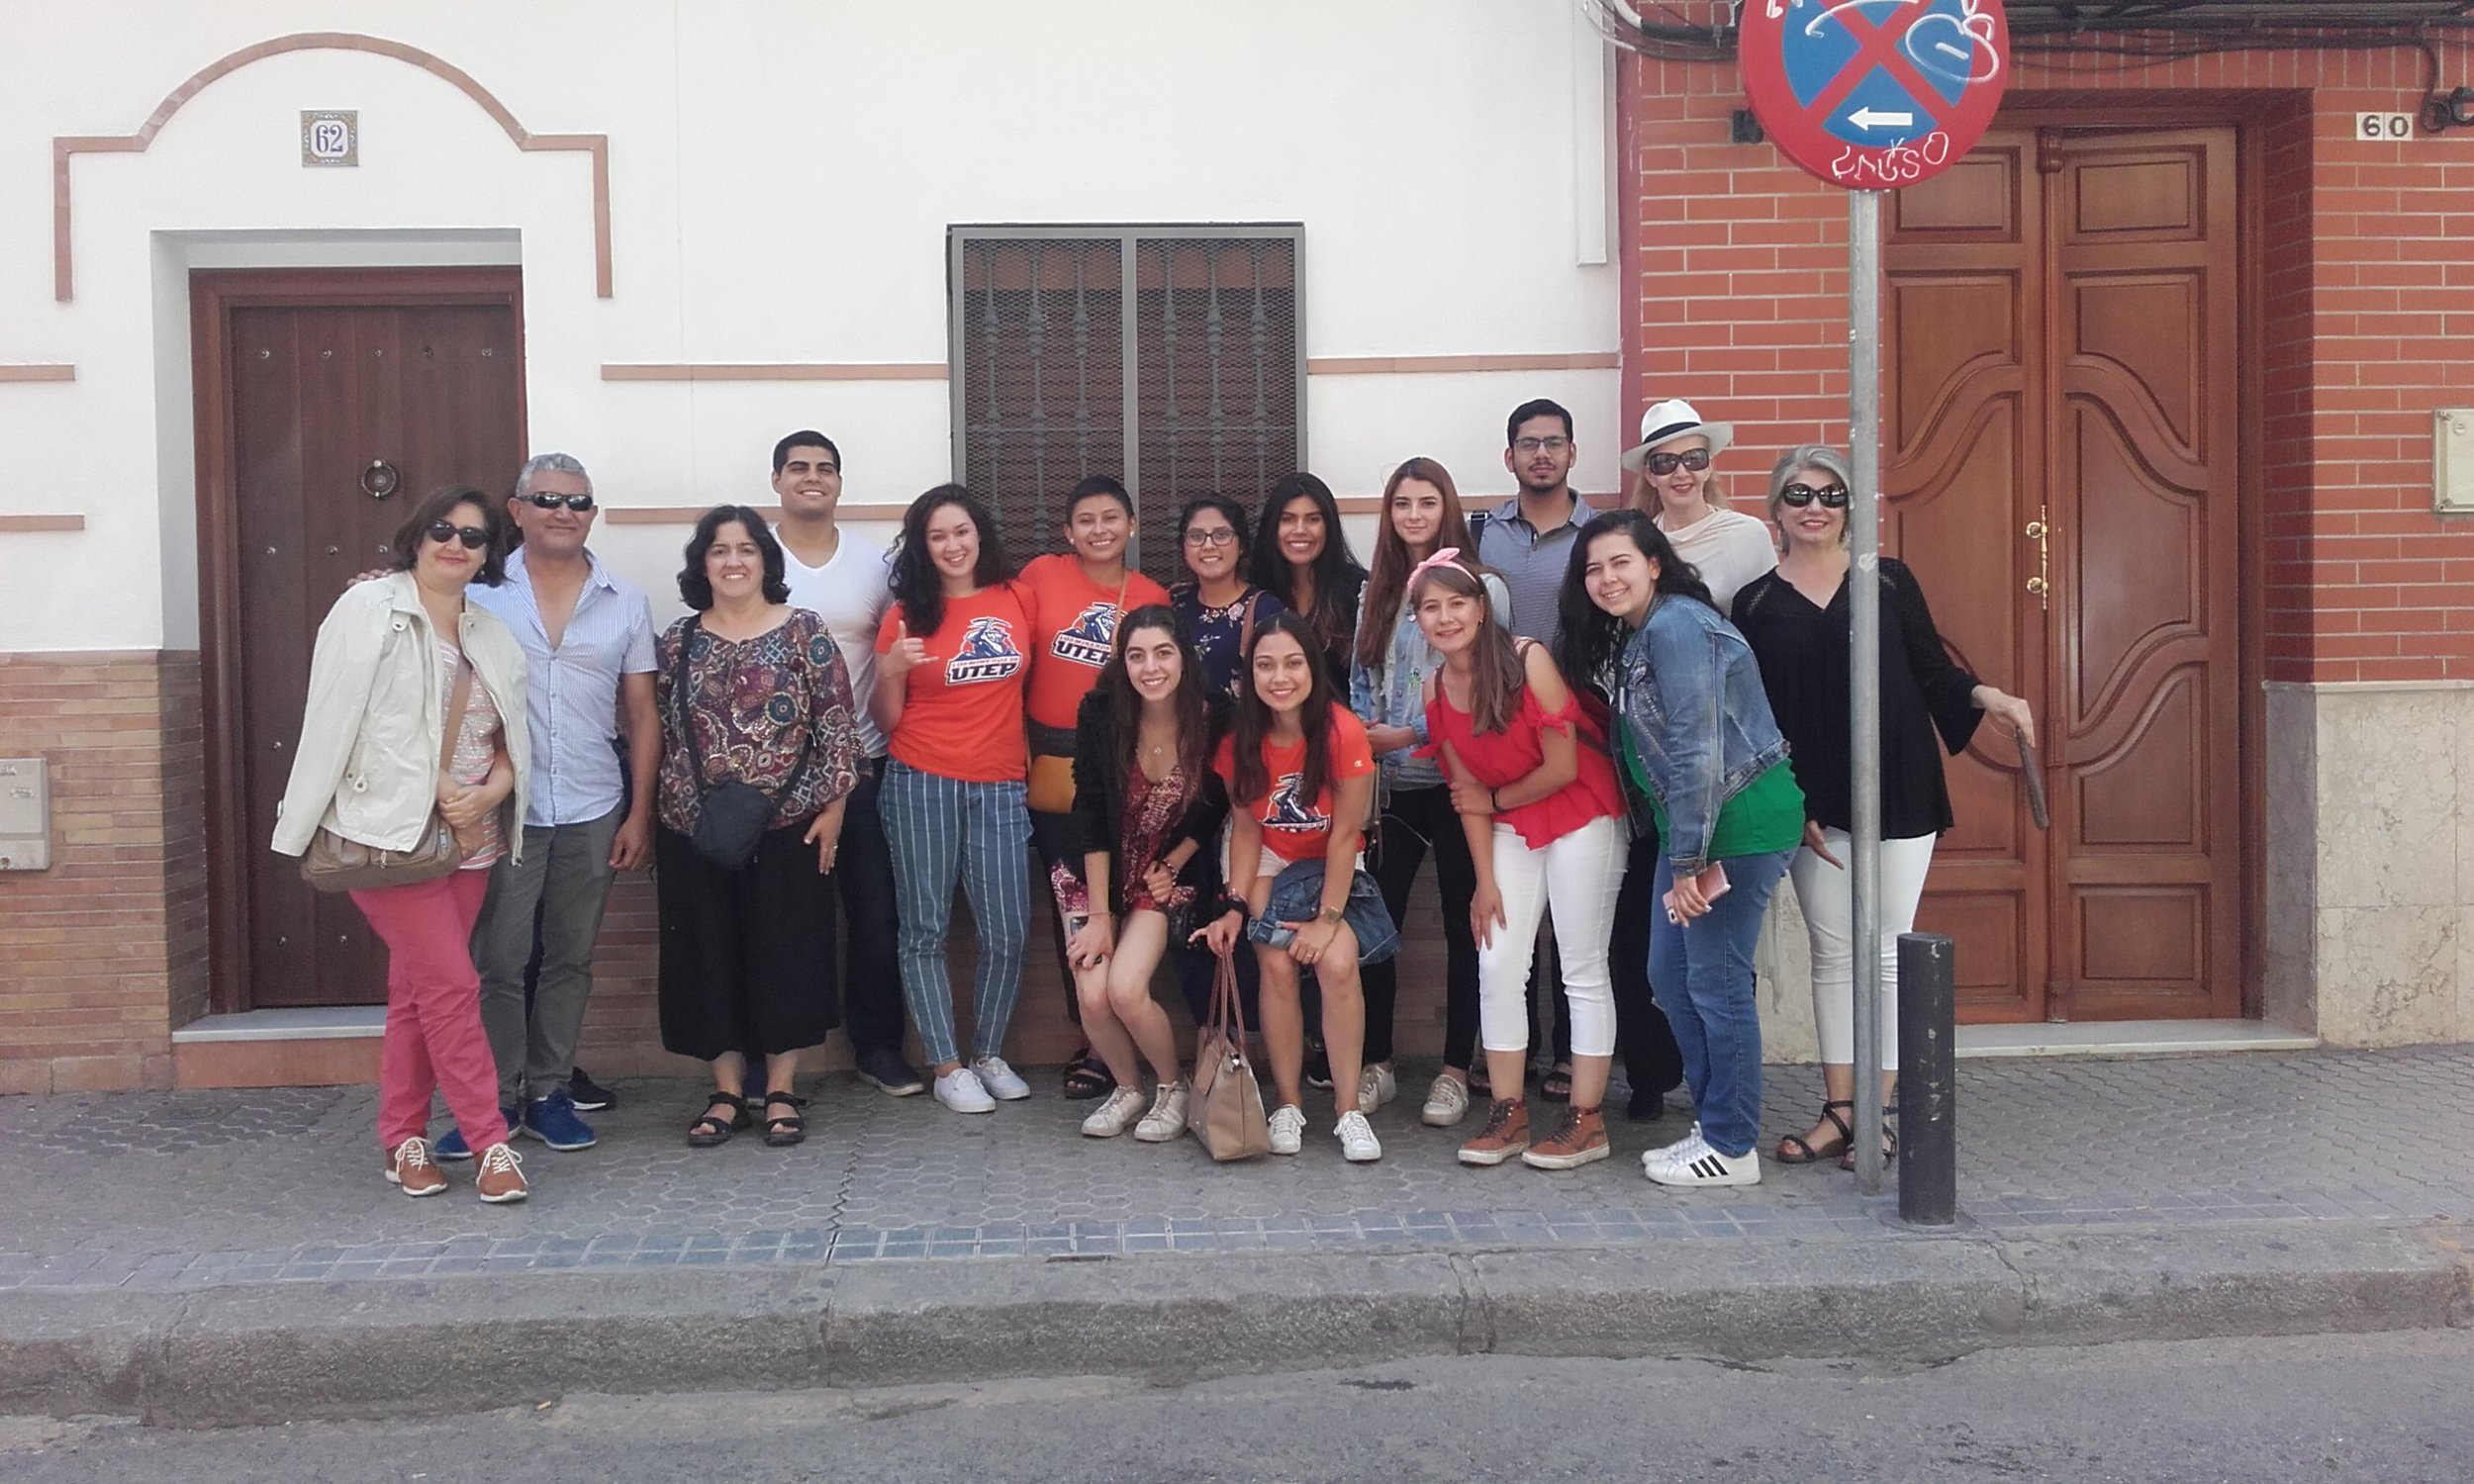 For the first time in 2018, faculty and students from education, health sciences and liberal arts traveled together to Seville, Spain, to study global health. Photo courtesy of Beverly Argus-Calvo